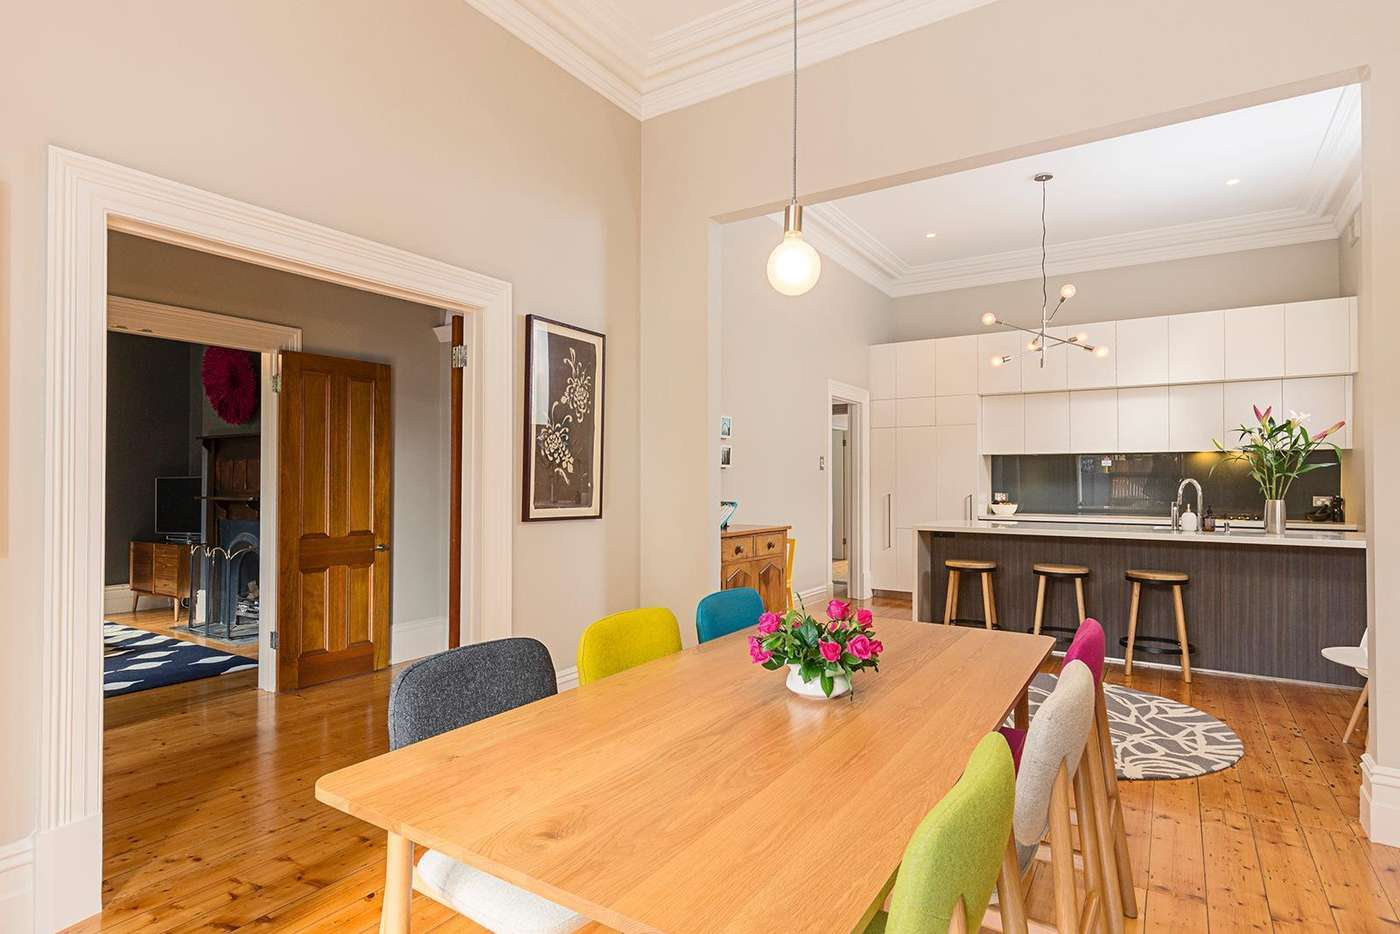 Main view of Homely house listing, 1/185 Inkerman Street, St Kilda VIC 3182